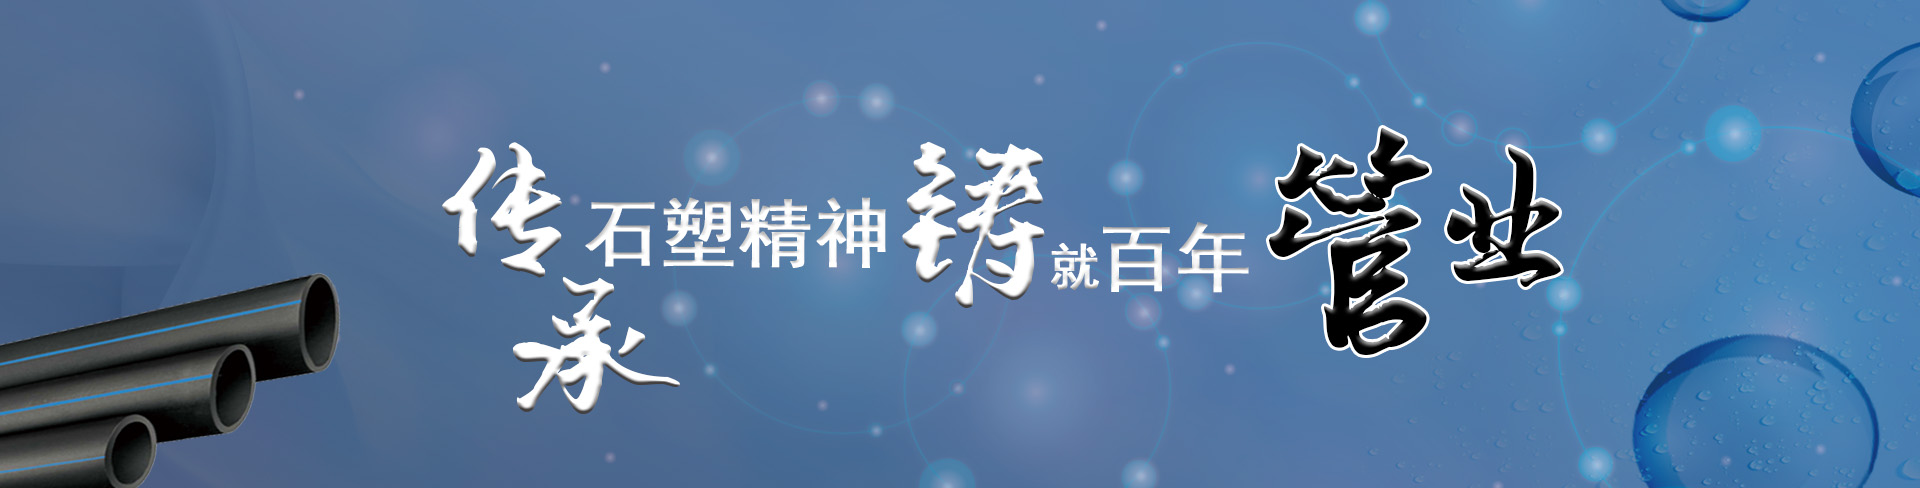 http://www.szssslc.cn/data/upload/202010/20201026135450_463.jpg